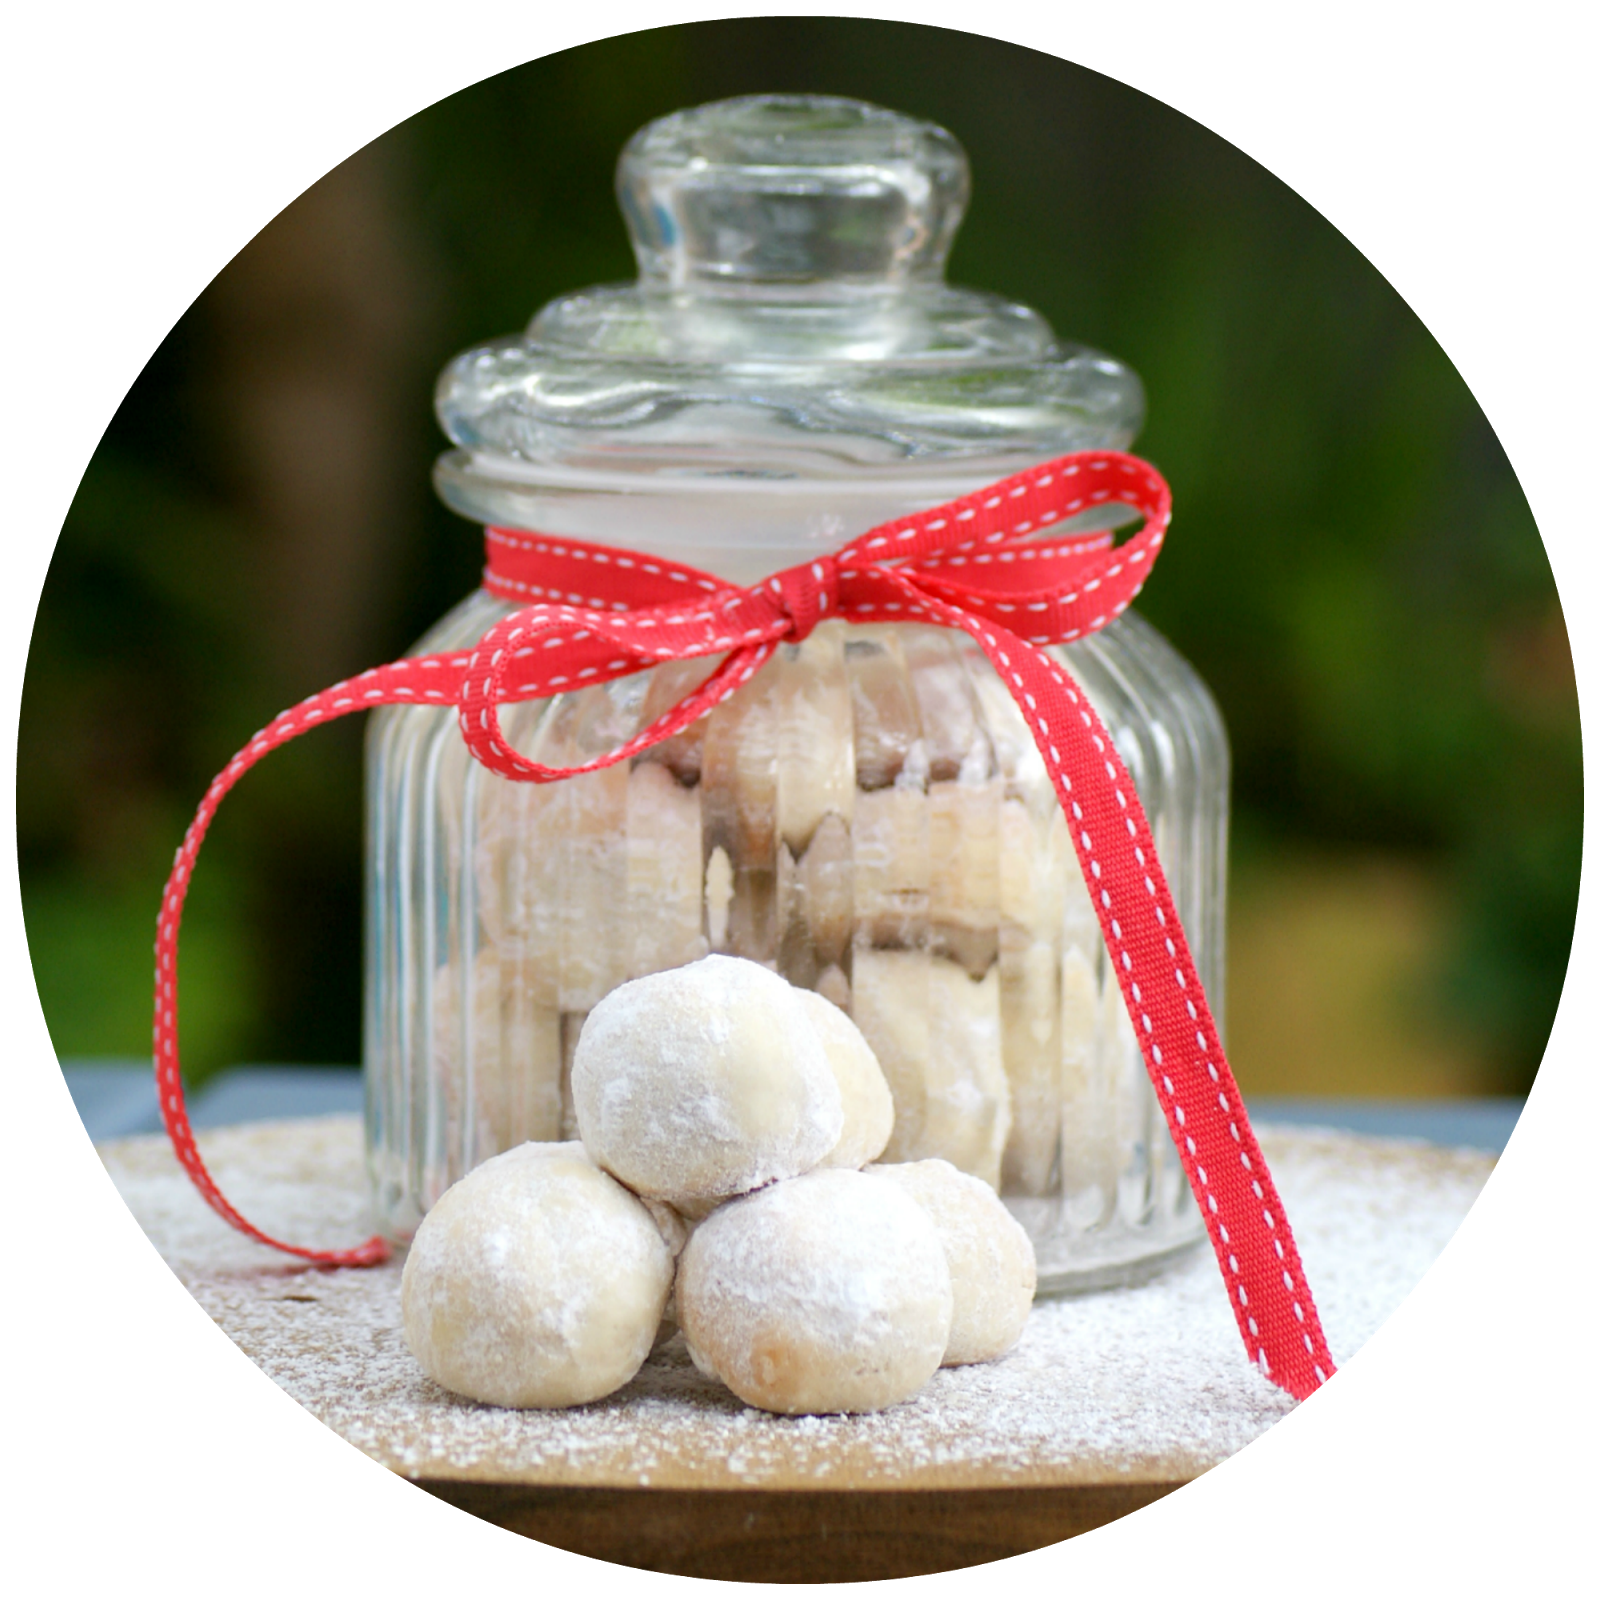 Homemade Cookies in a Jar - Edible Gift Ideas, Healthy, Low Fat, Gluten Free, Handmade Gift Ideas, Homemade Gifts for Christmas